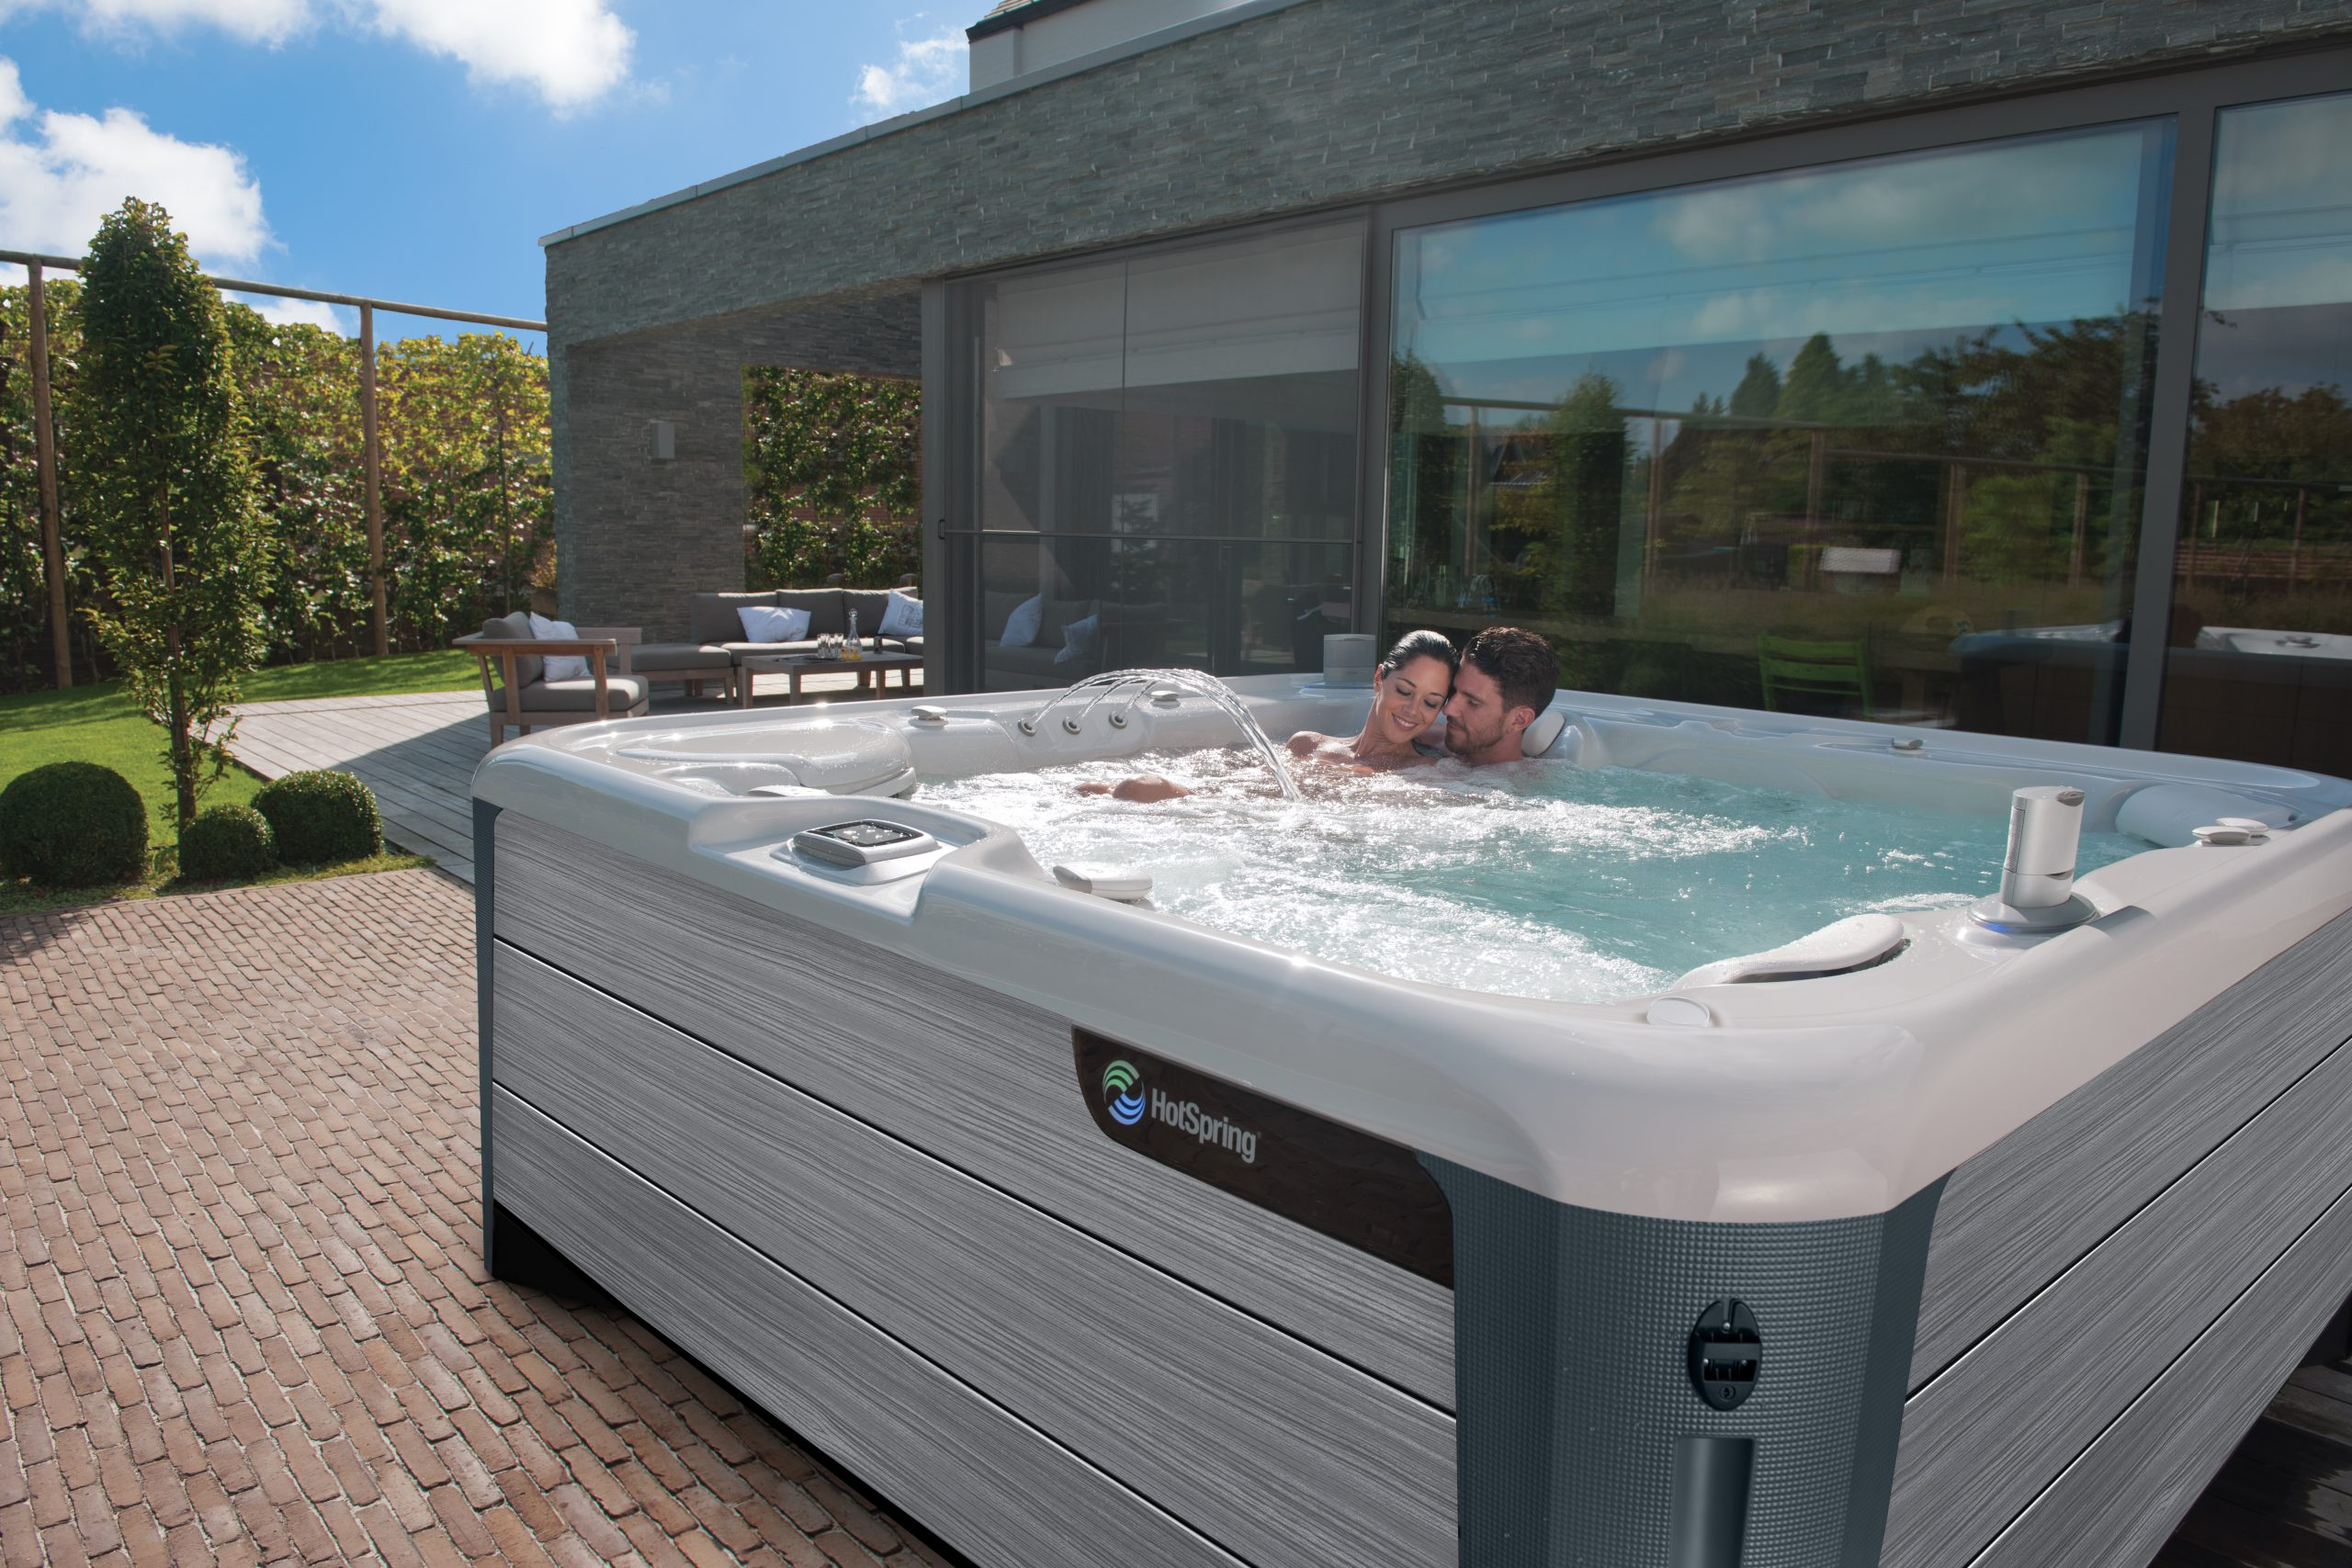 5 Reasons To Love A Two-Person Hot Tub